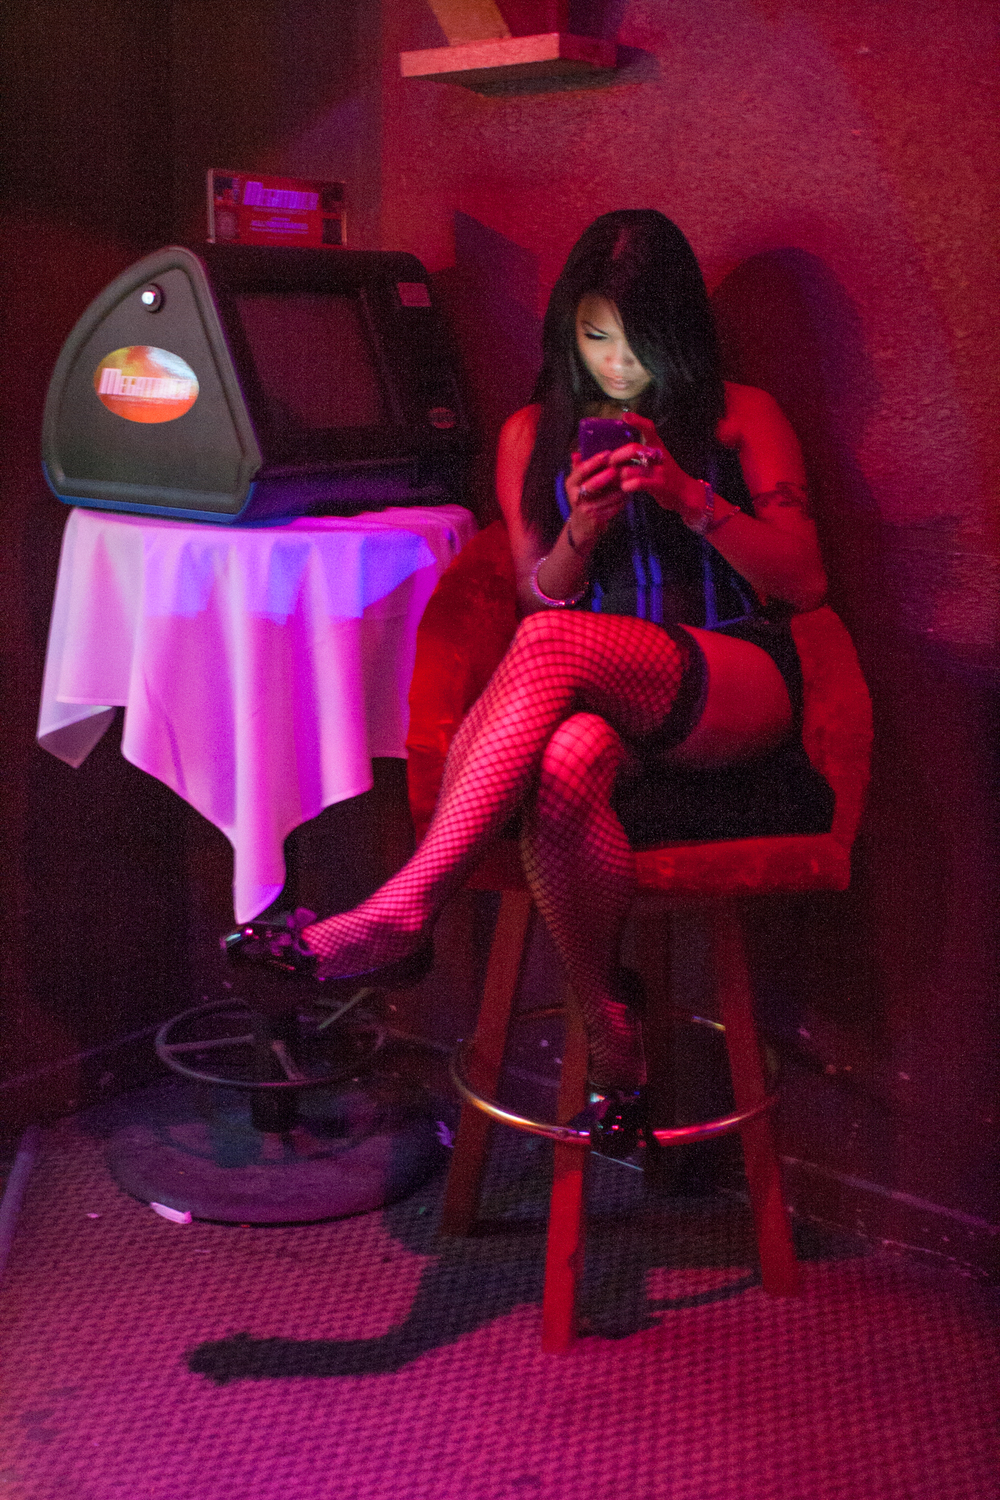 Jade on her phone during her downtime at the strip club where she works